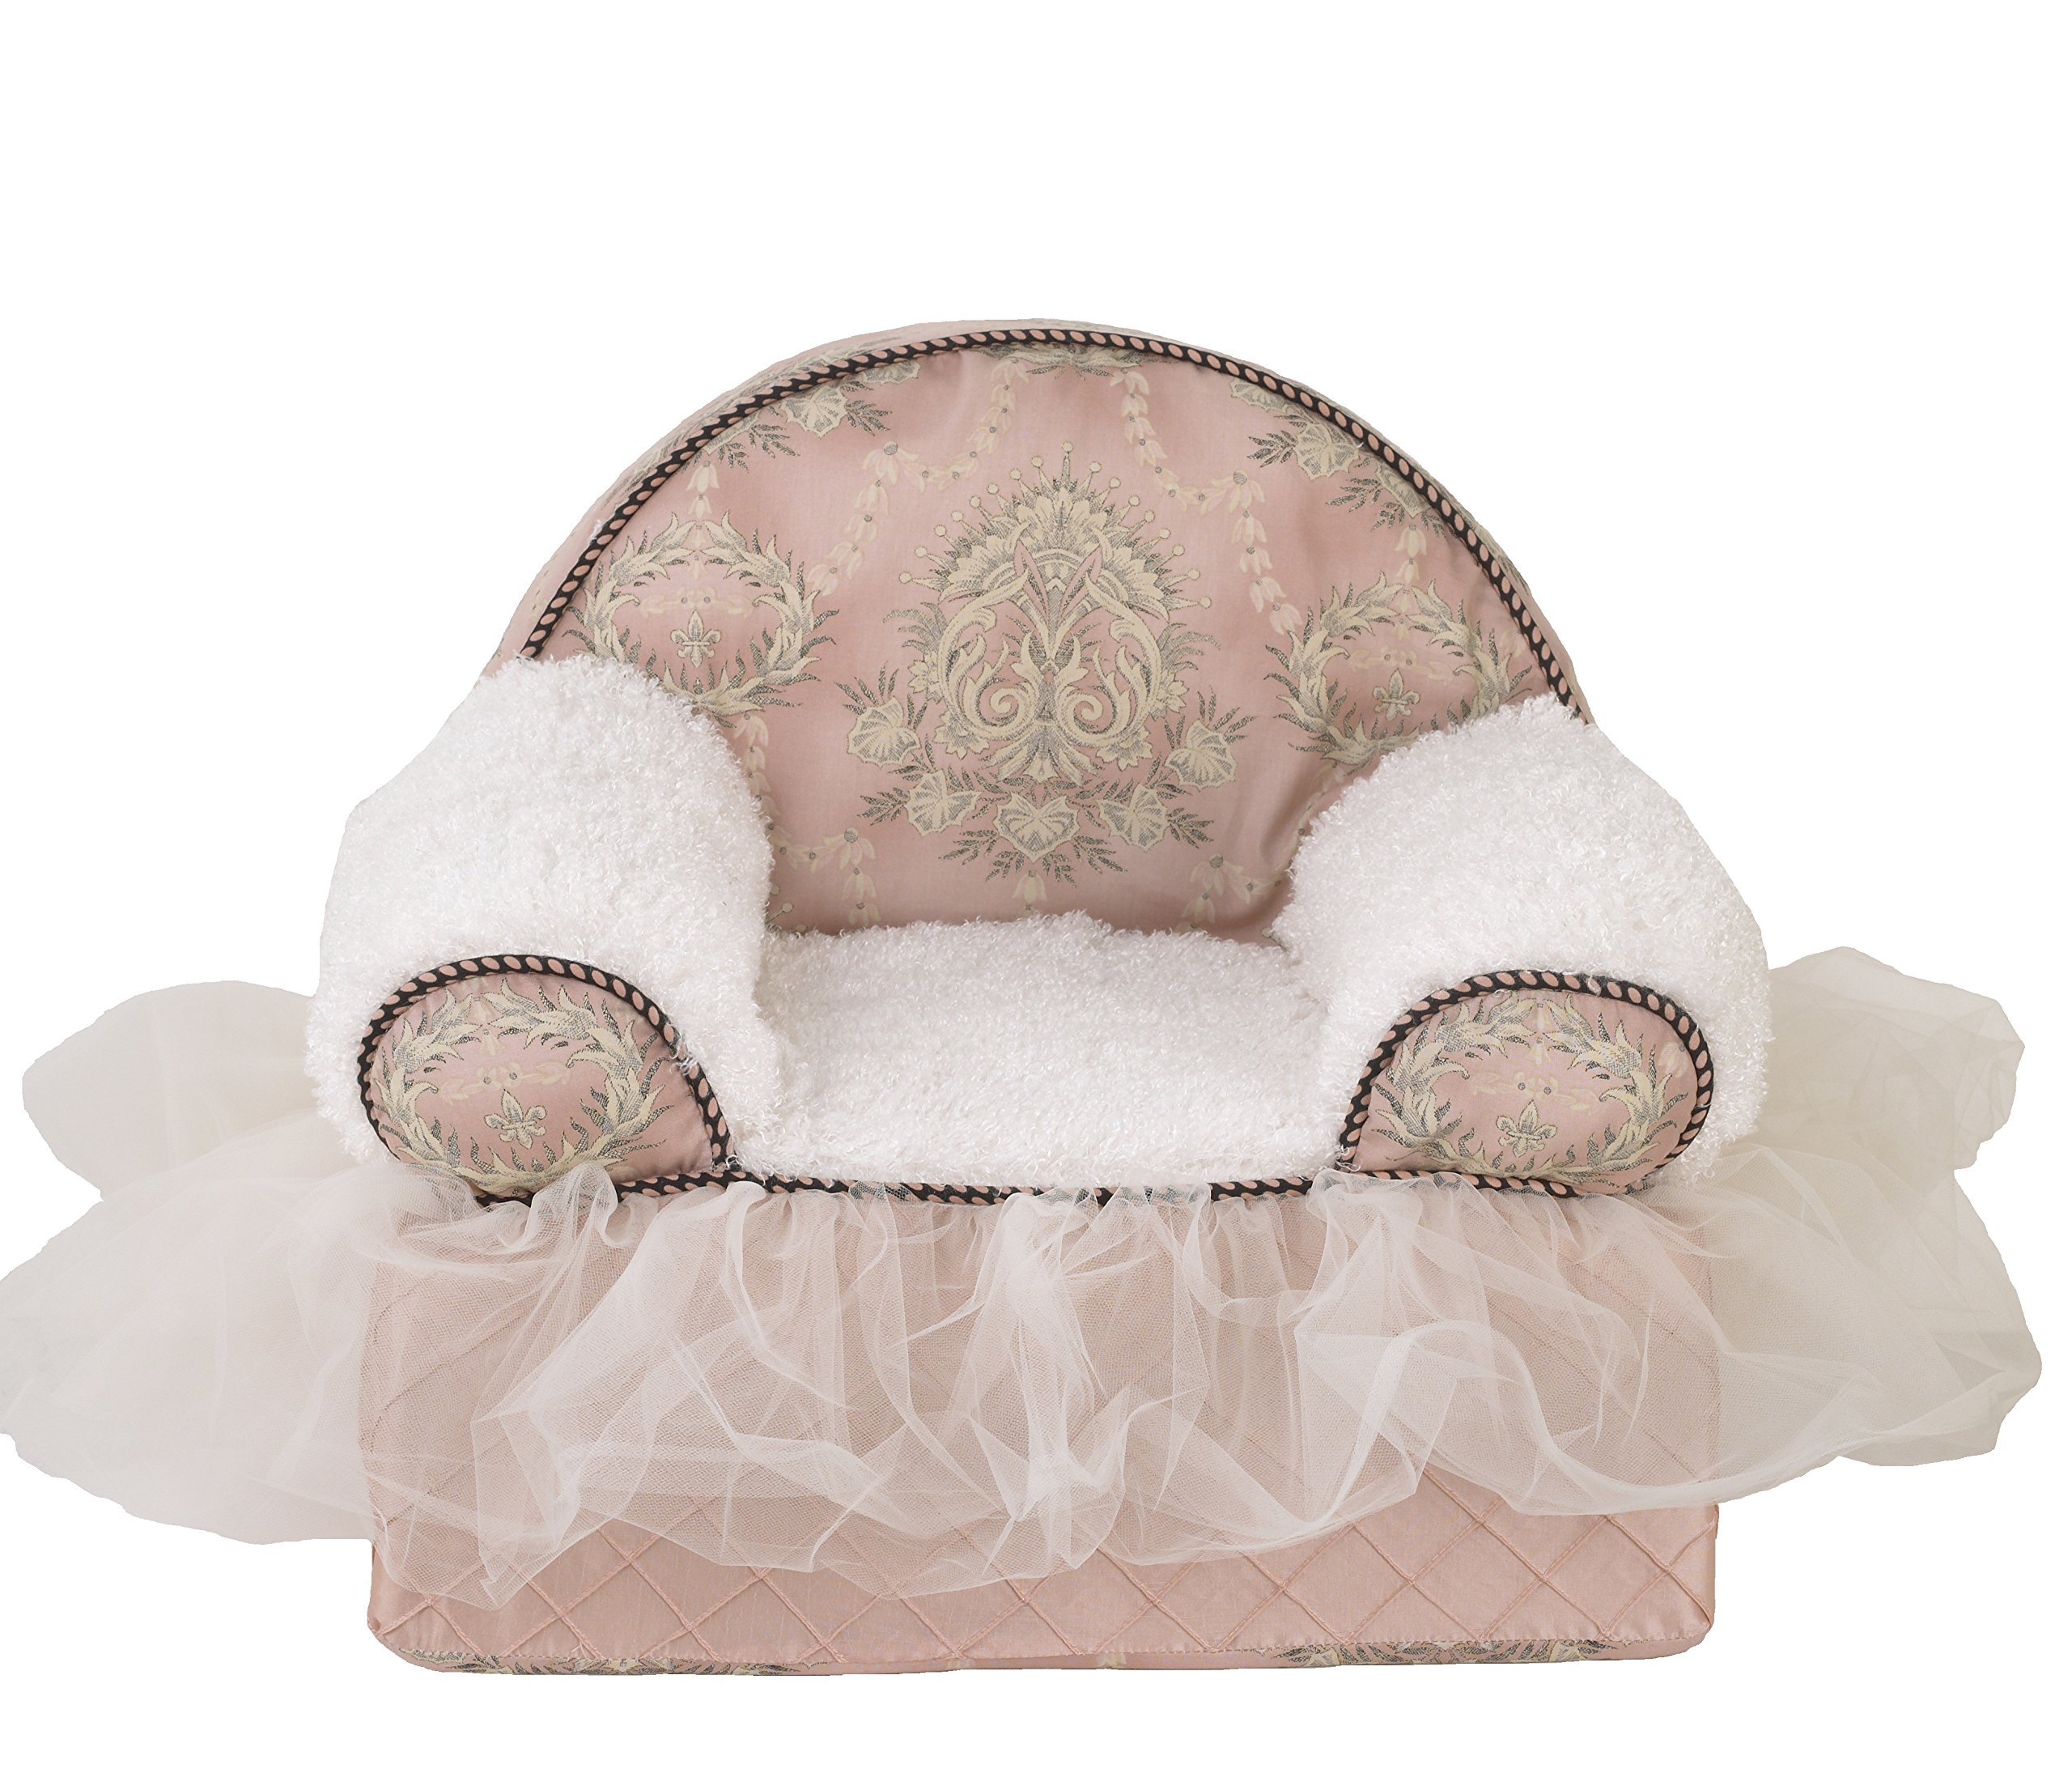 Cotton Tale Designs 100% Cotton Pink Floral with Tulle Ruffle Baby/Toddler Foam Chair, Nightingale